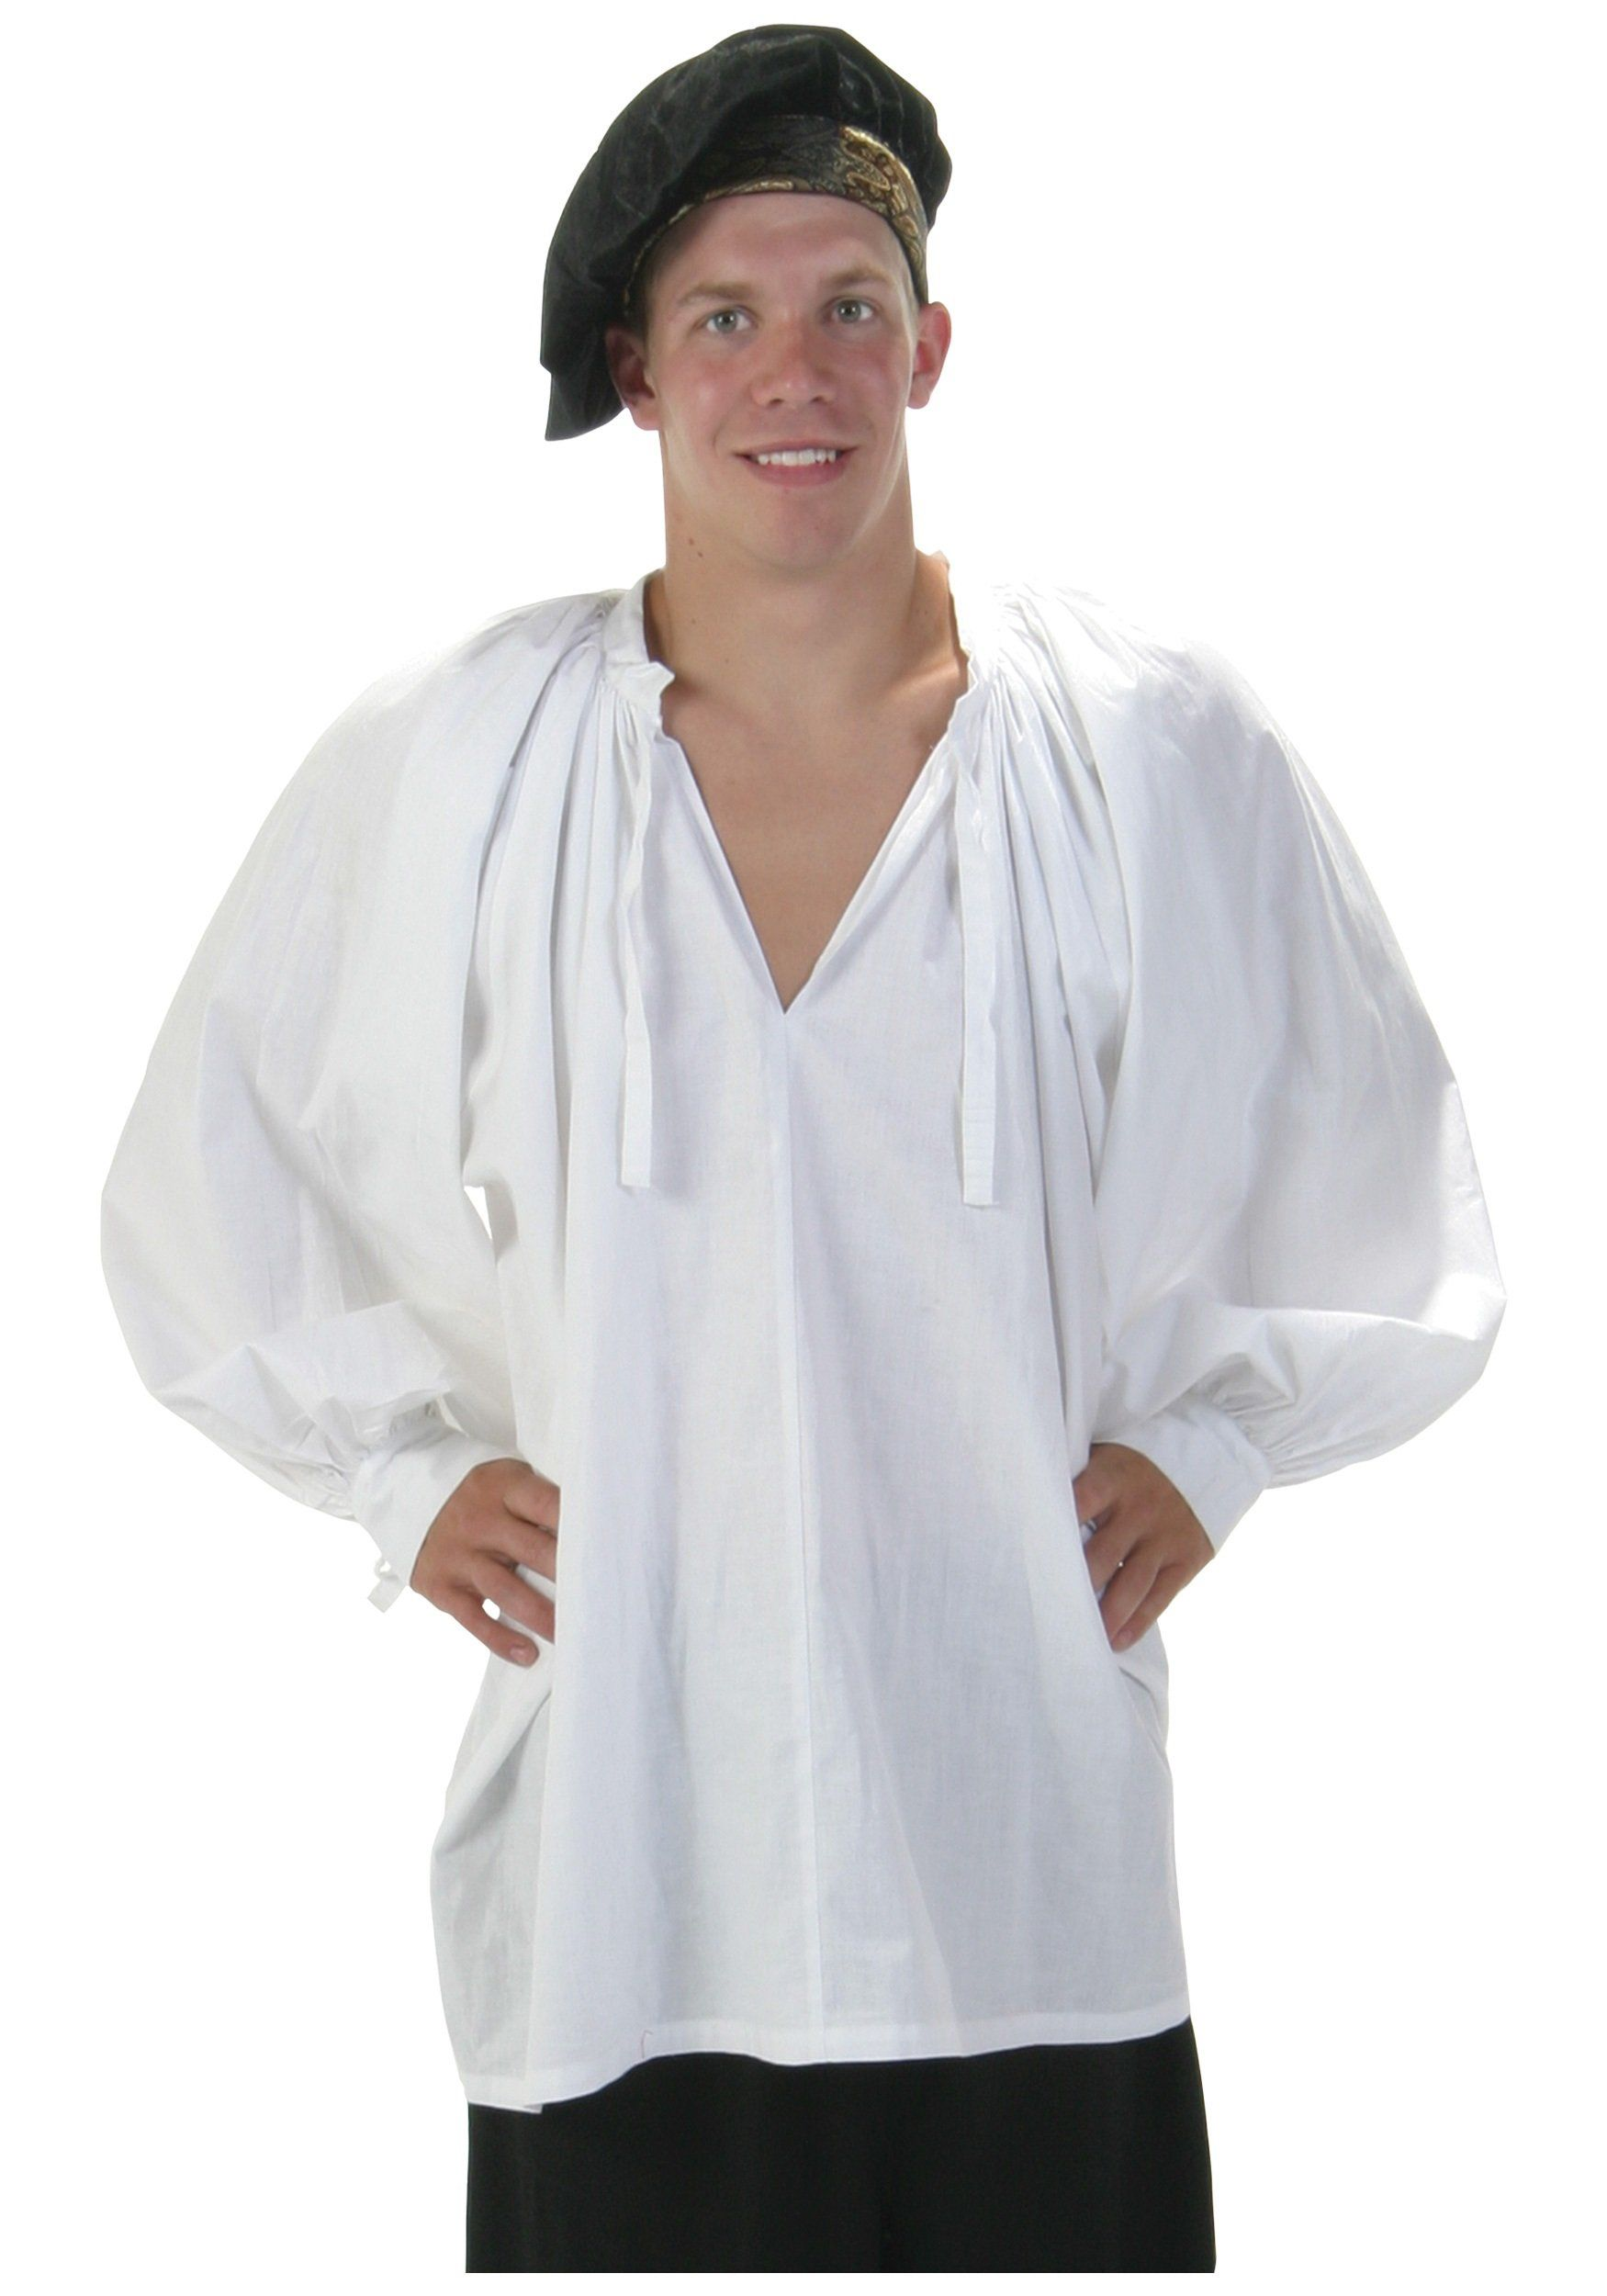 3d67ed25dc685 Amazon.com  White Renaissance Peasant Shirt (Medium)  Adult Sized Costumes   Clothing